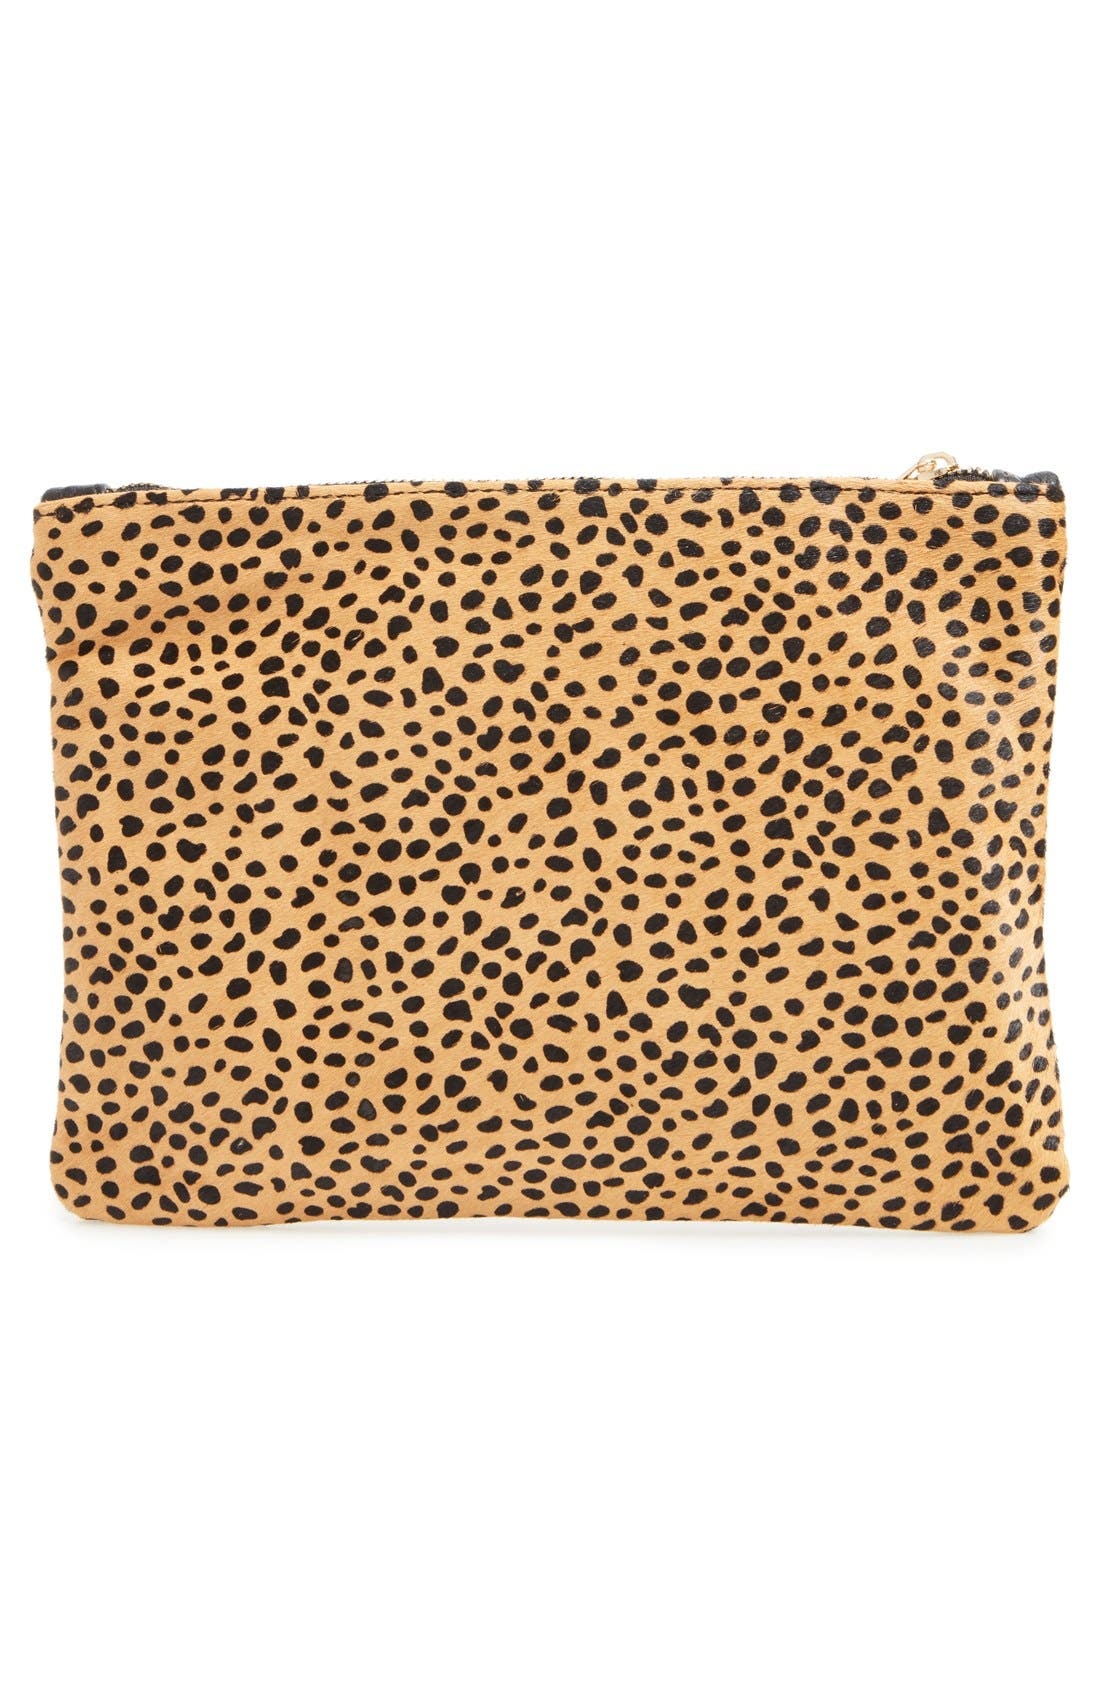 Alternate Image 3  - Sole Society 'Dolce' Genuine Calf Hair Clutch